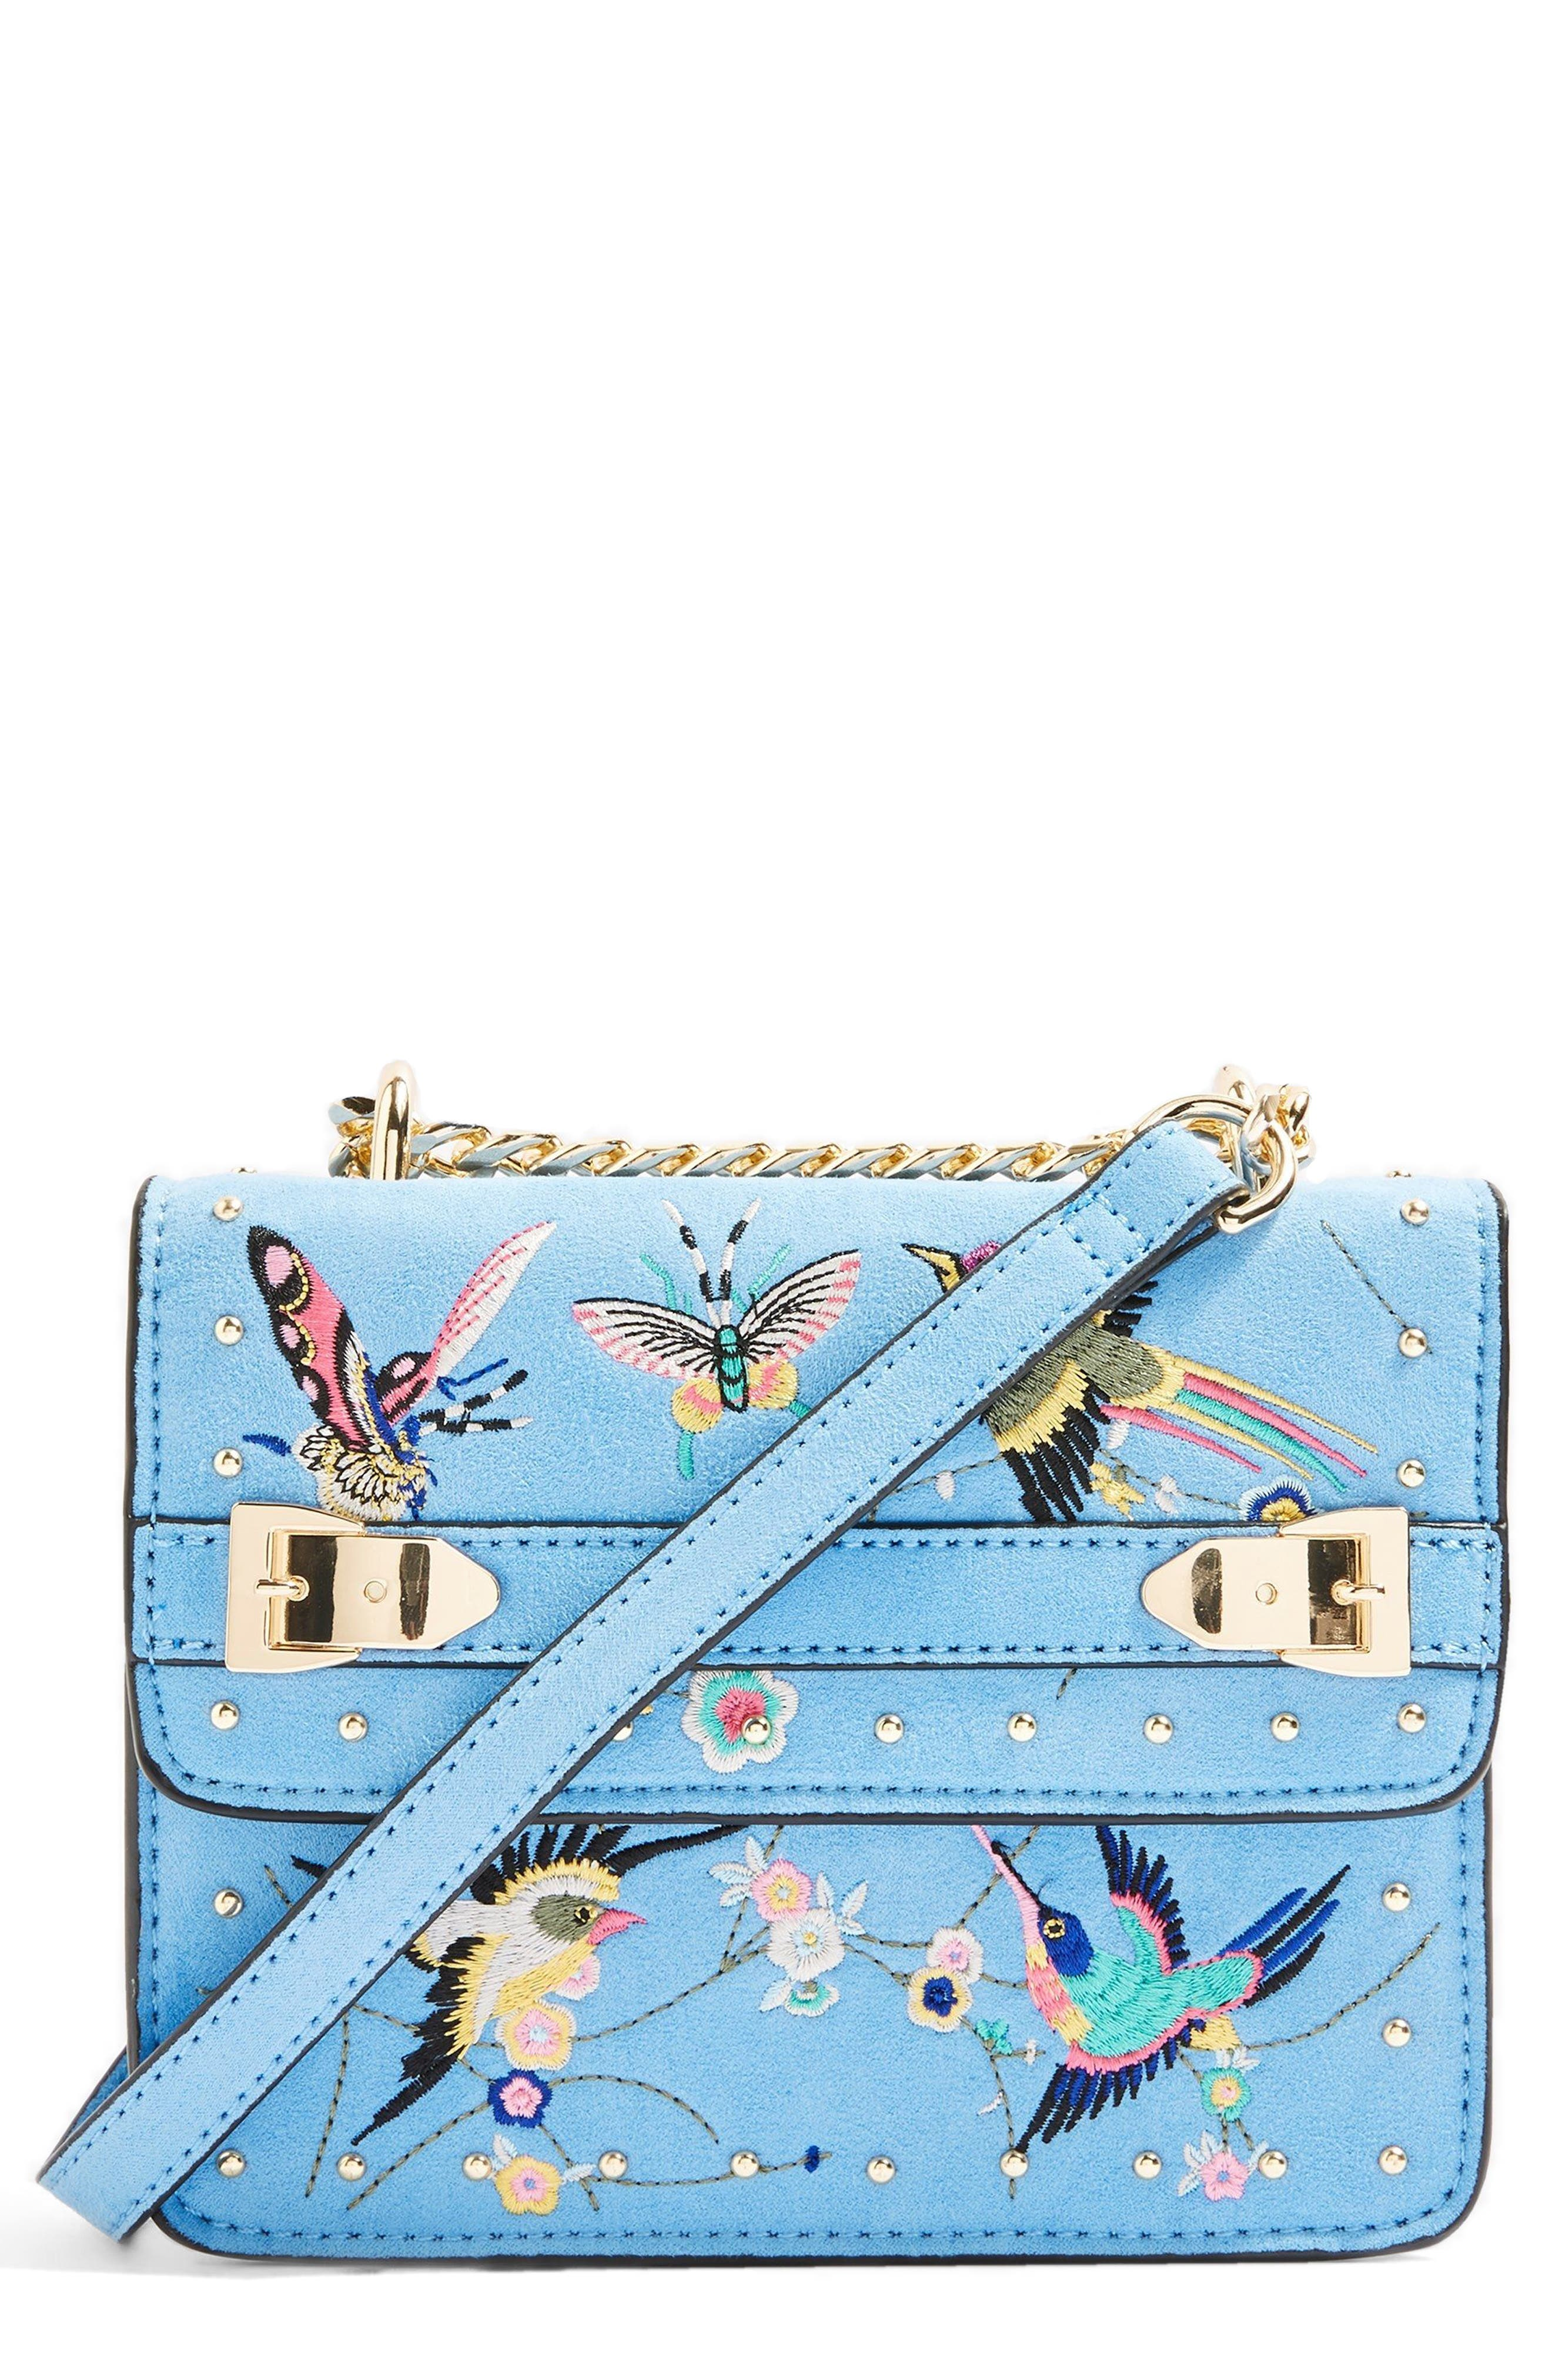 Polly Bird Embroidered Crossbody Bag,                             Main thumbnail 1, color,                             BLUE MULTI